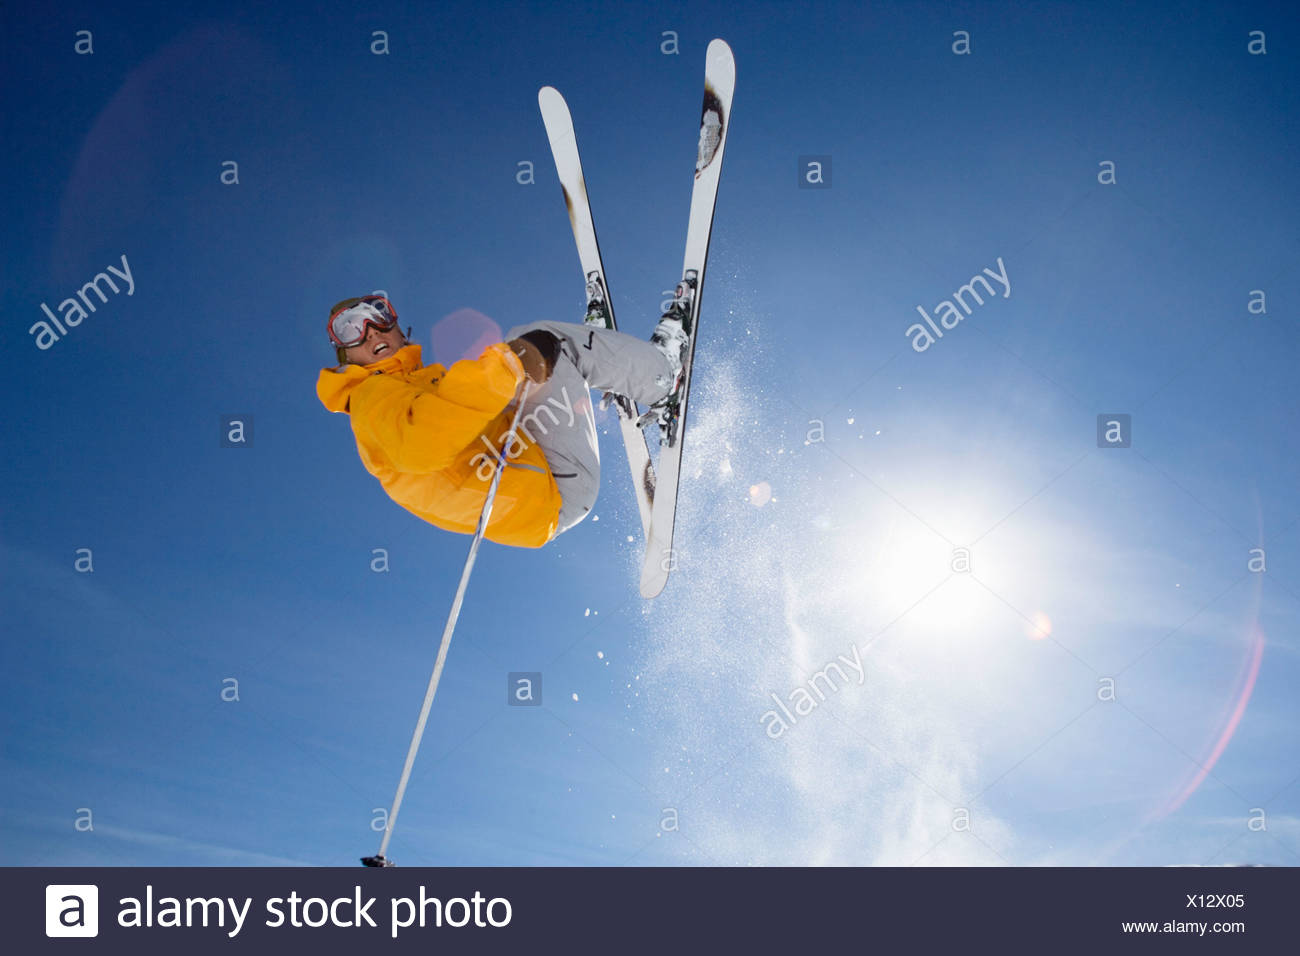 Skier jumping shot from bellow Stock Photo